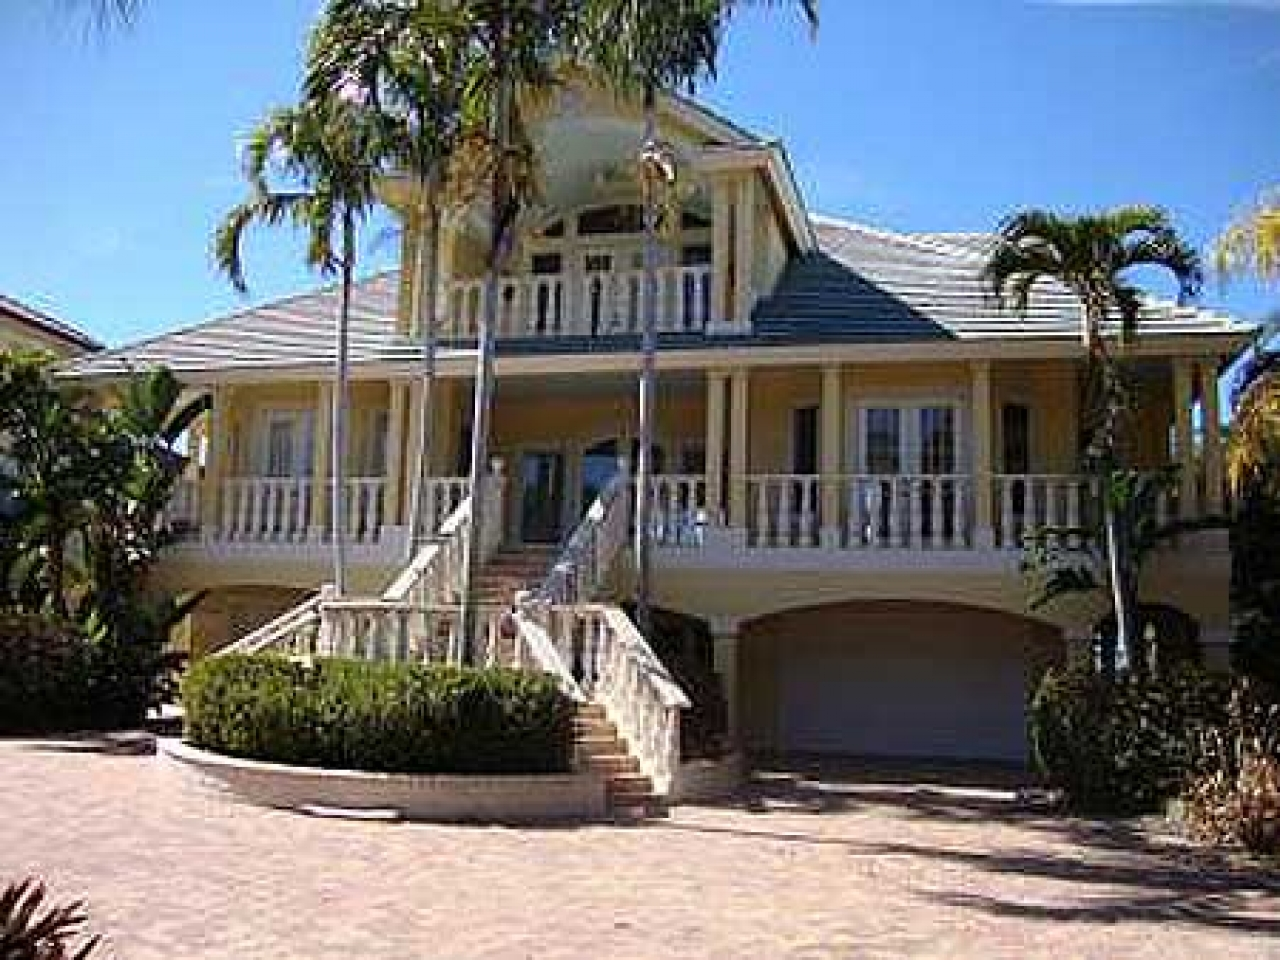 Beach cottage floor plans beach house plans for homes on for Island house plans on pilings